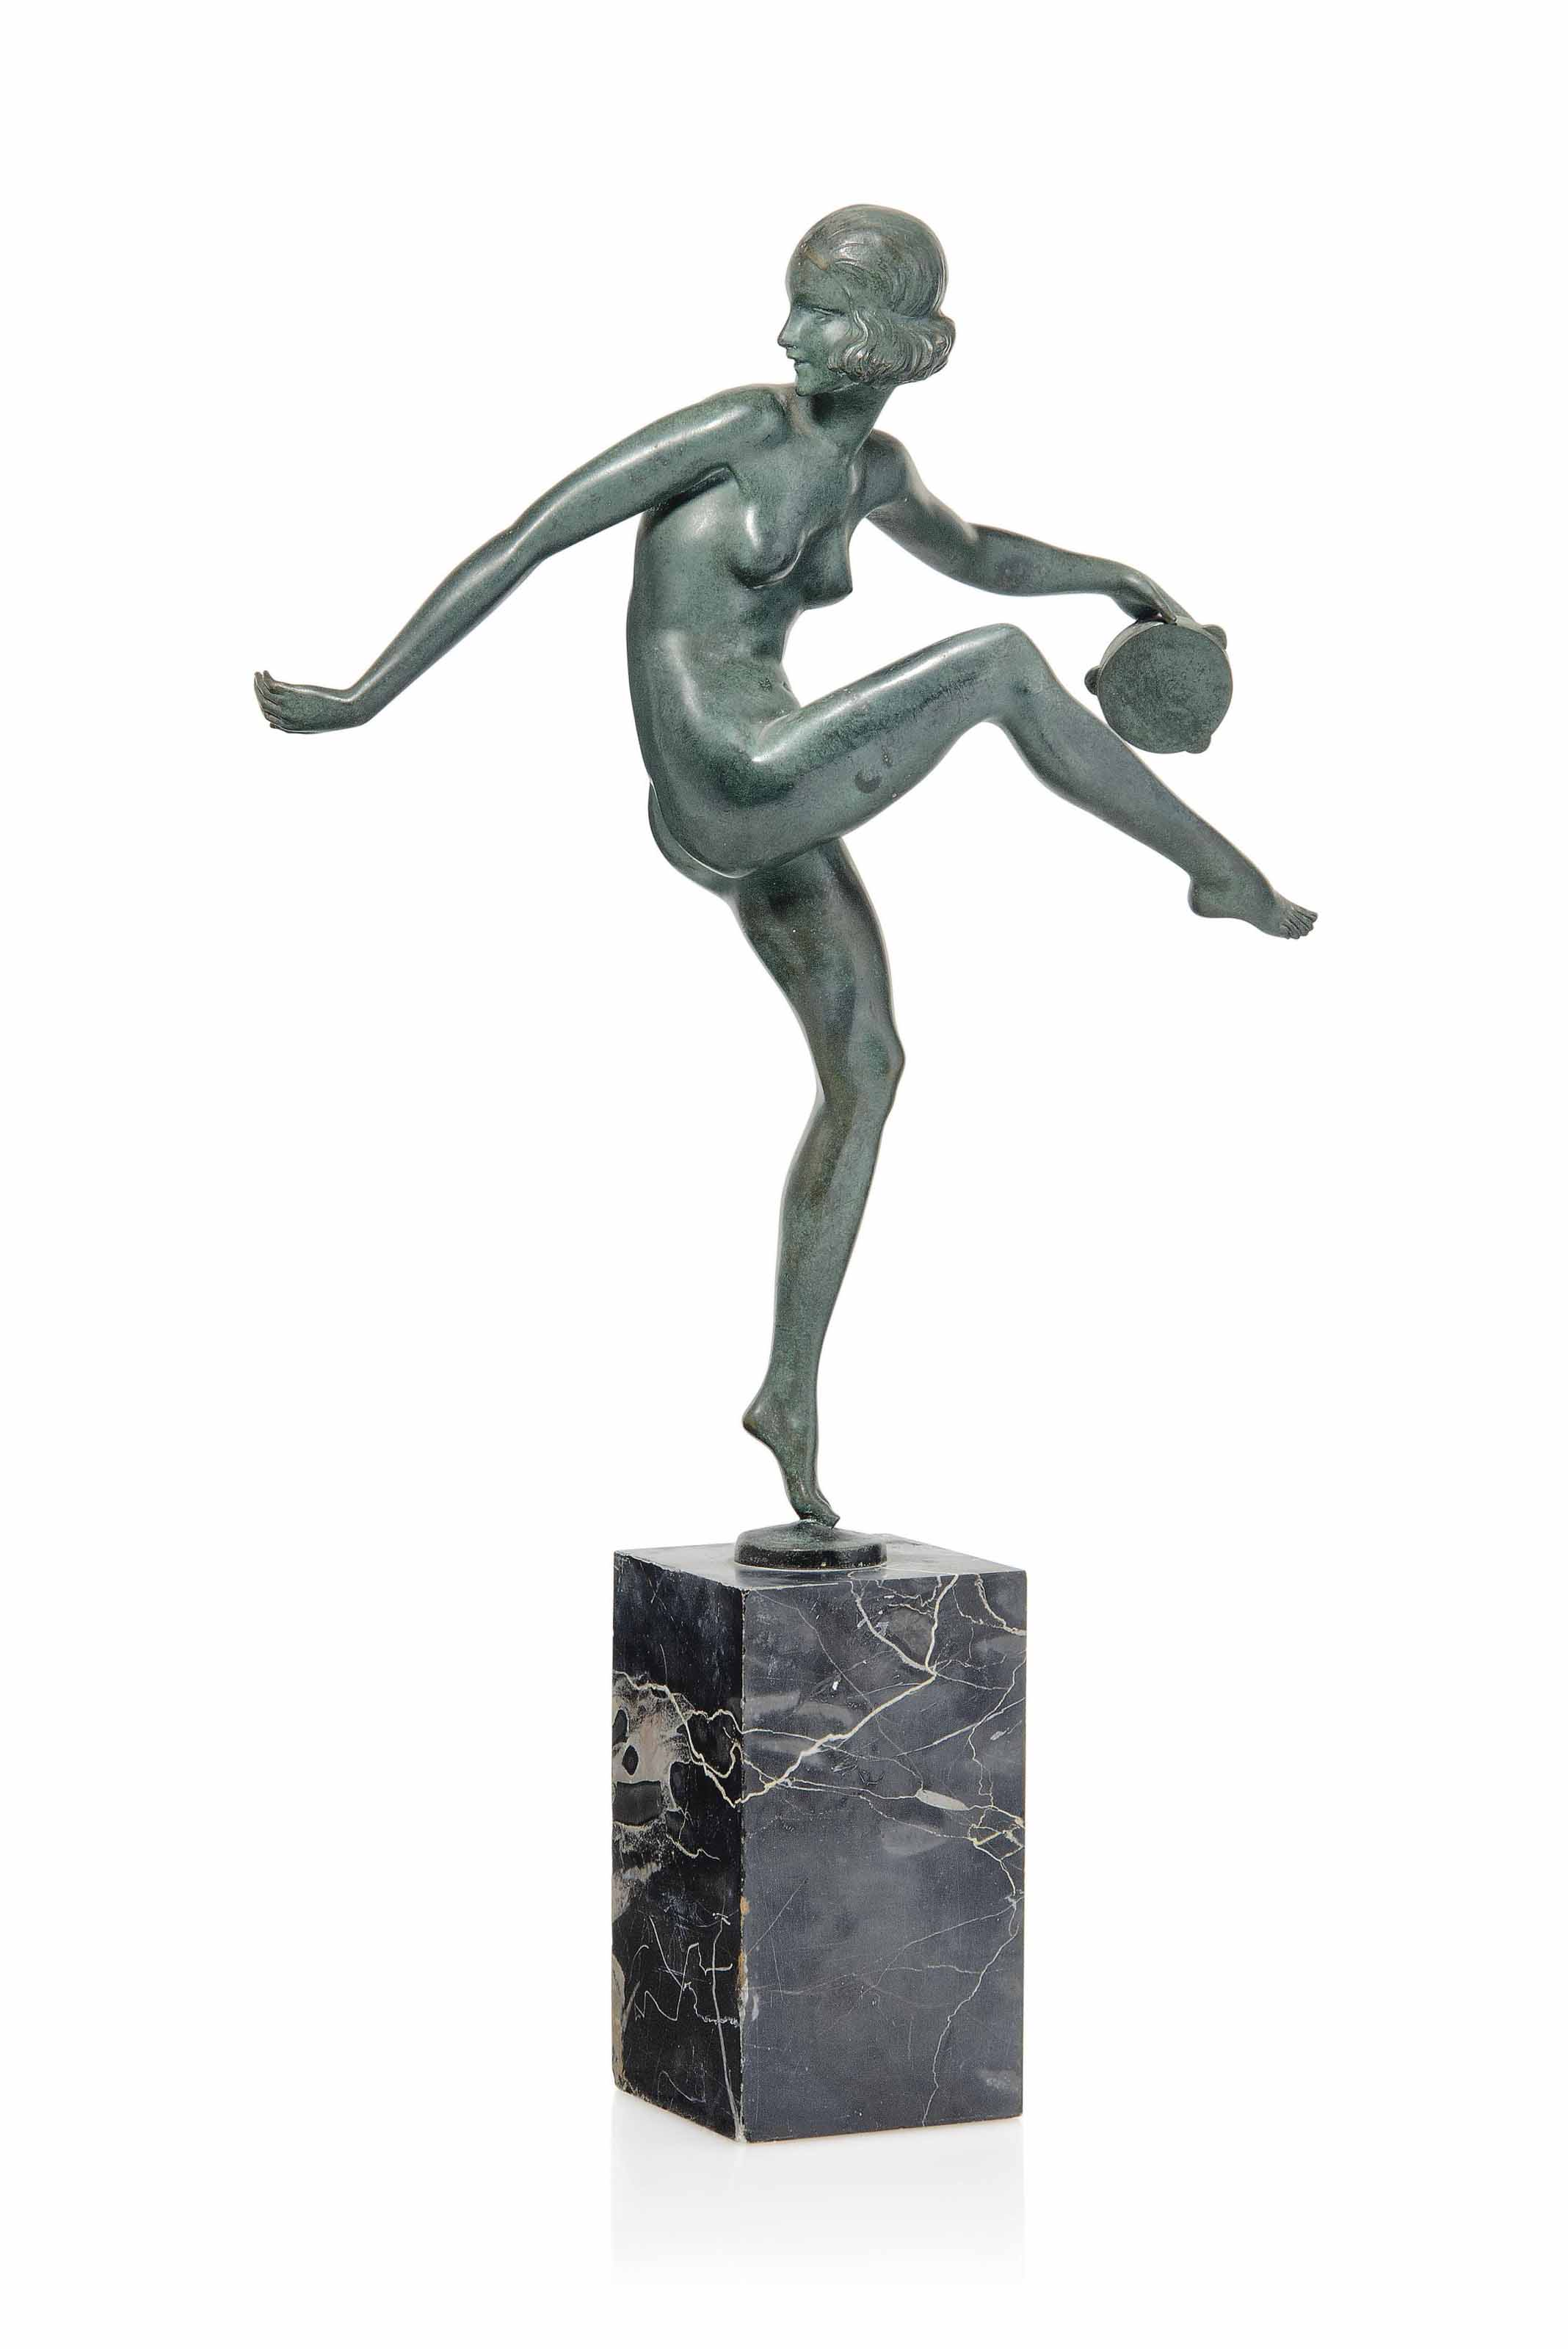 'TAMBOURINE DANCER', A PIERRE LAUREL COLD-PAINTED BRONZE FIGURE